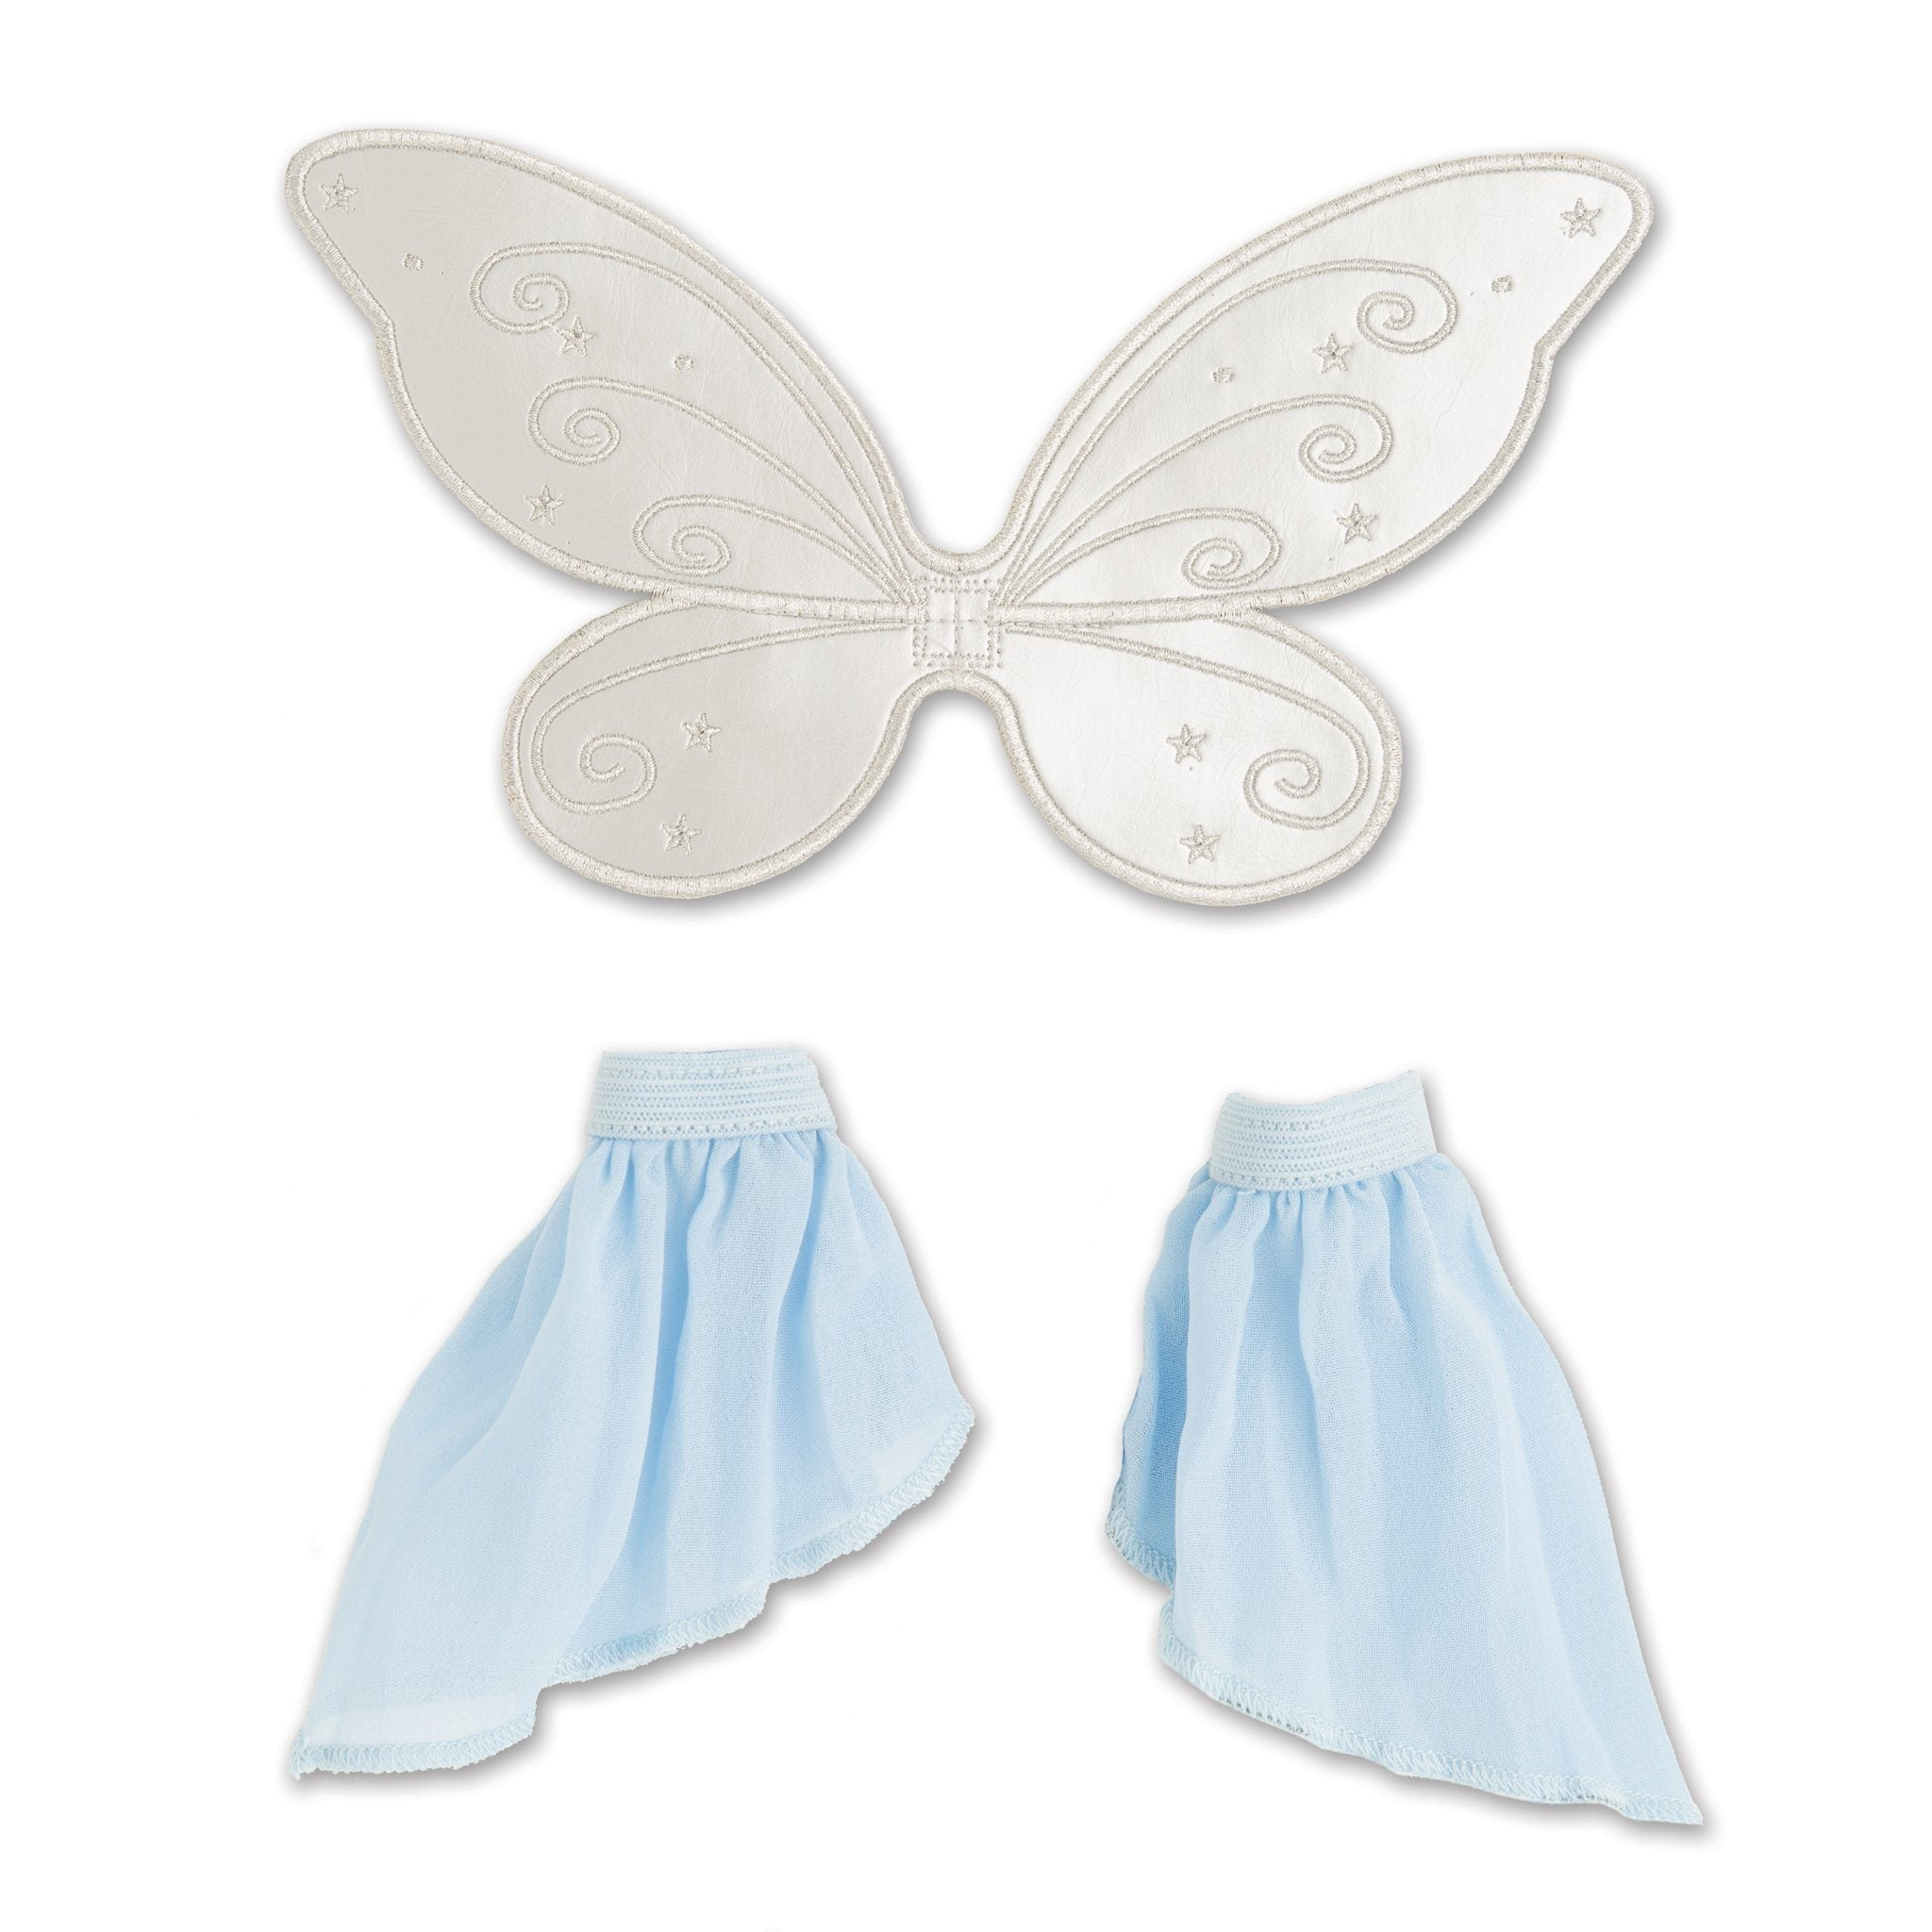 Flight of Fantasy costume fairy princess flow blue arm bands silver wings fits all 18 inch dolls.